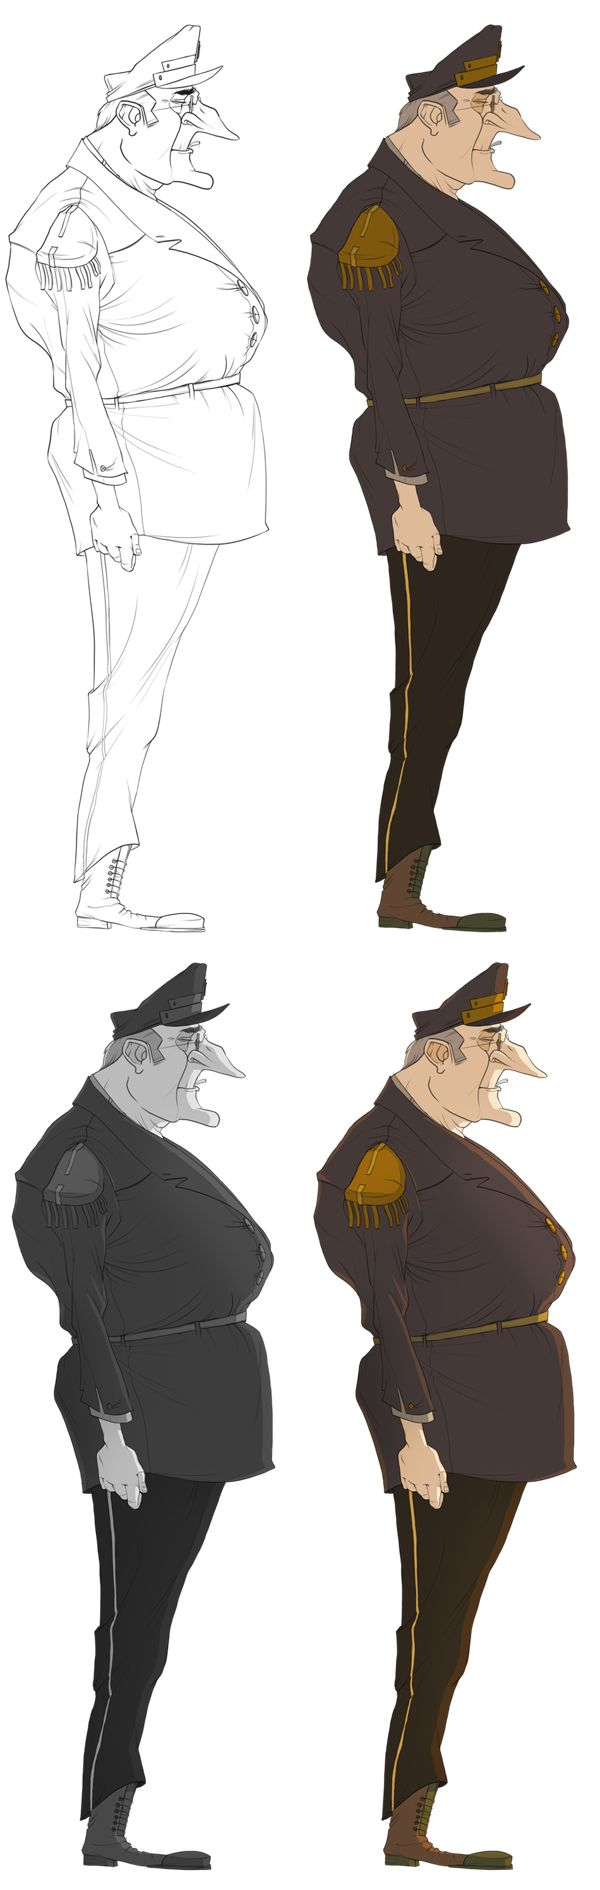 Concept Art Character Design Tutorial : Tutorials painting process a collection of ideas to try